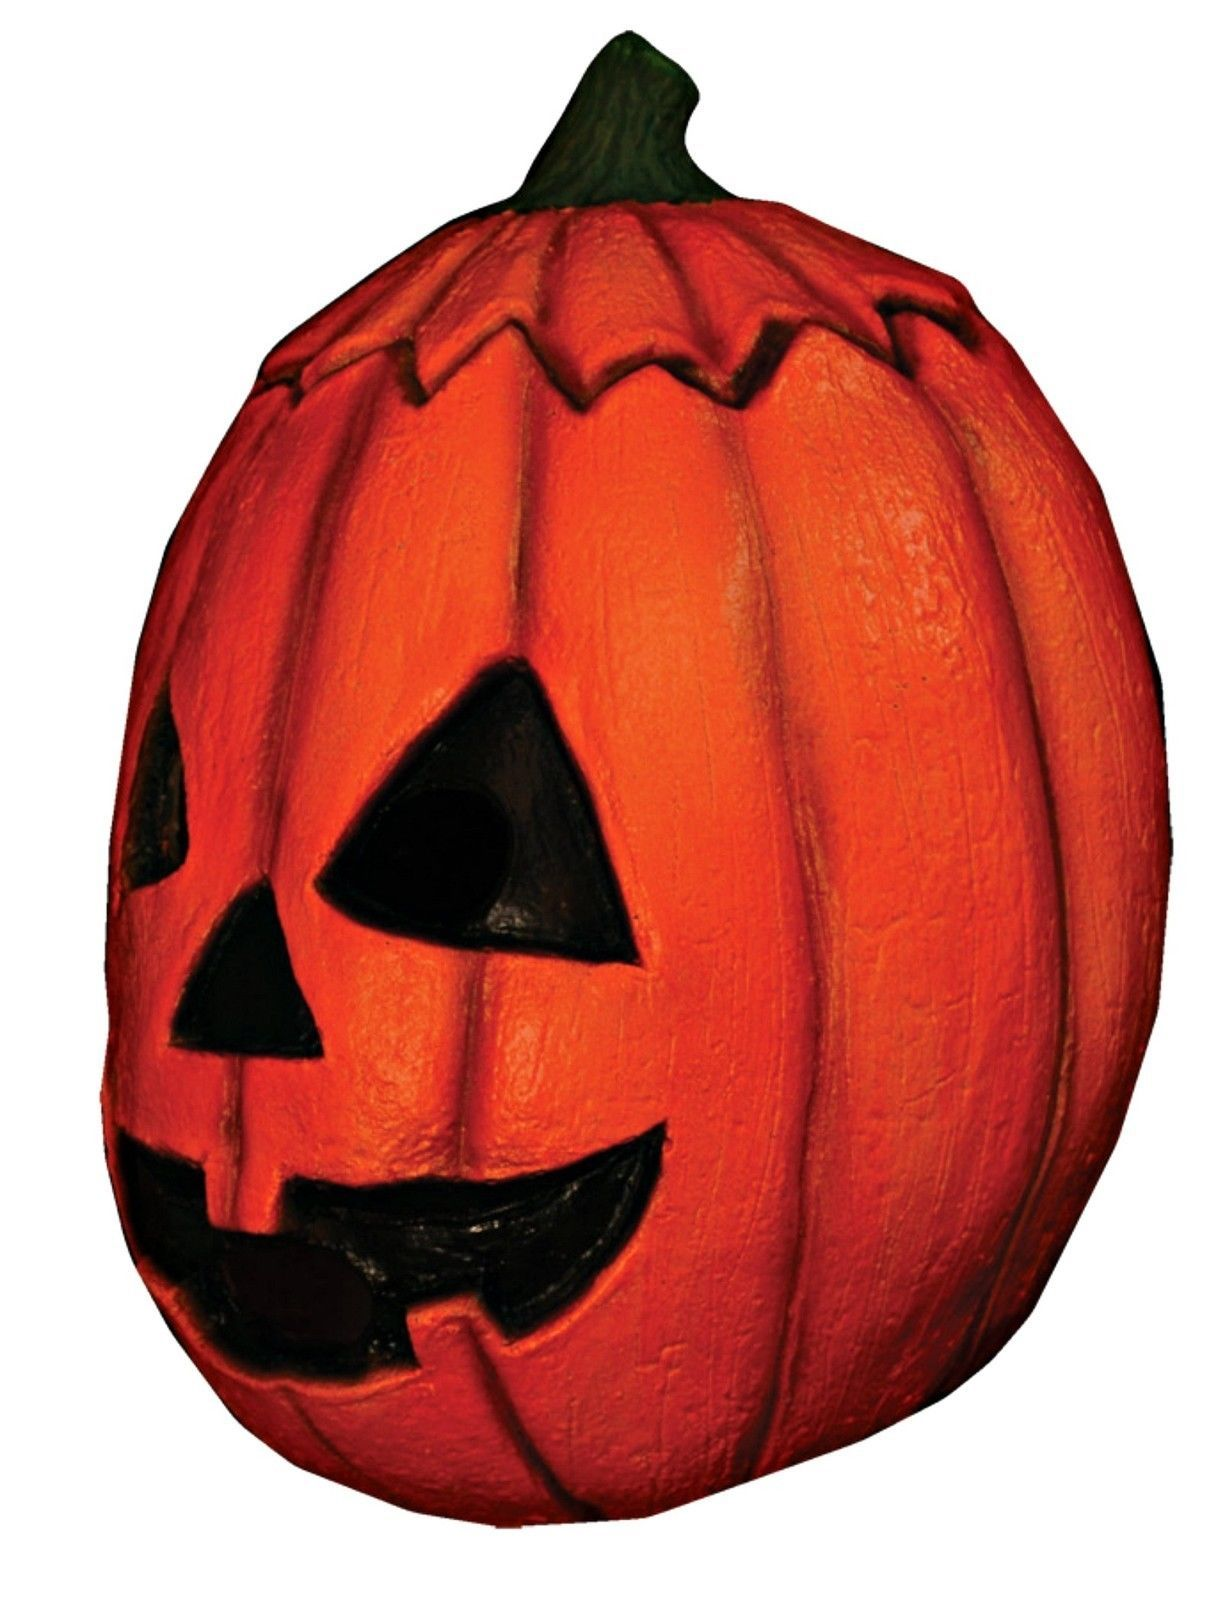 Halloween III Jack-o'-lantern Pumpkin Trick or Treat Mask